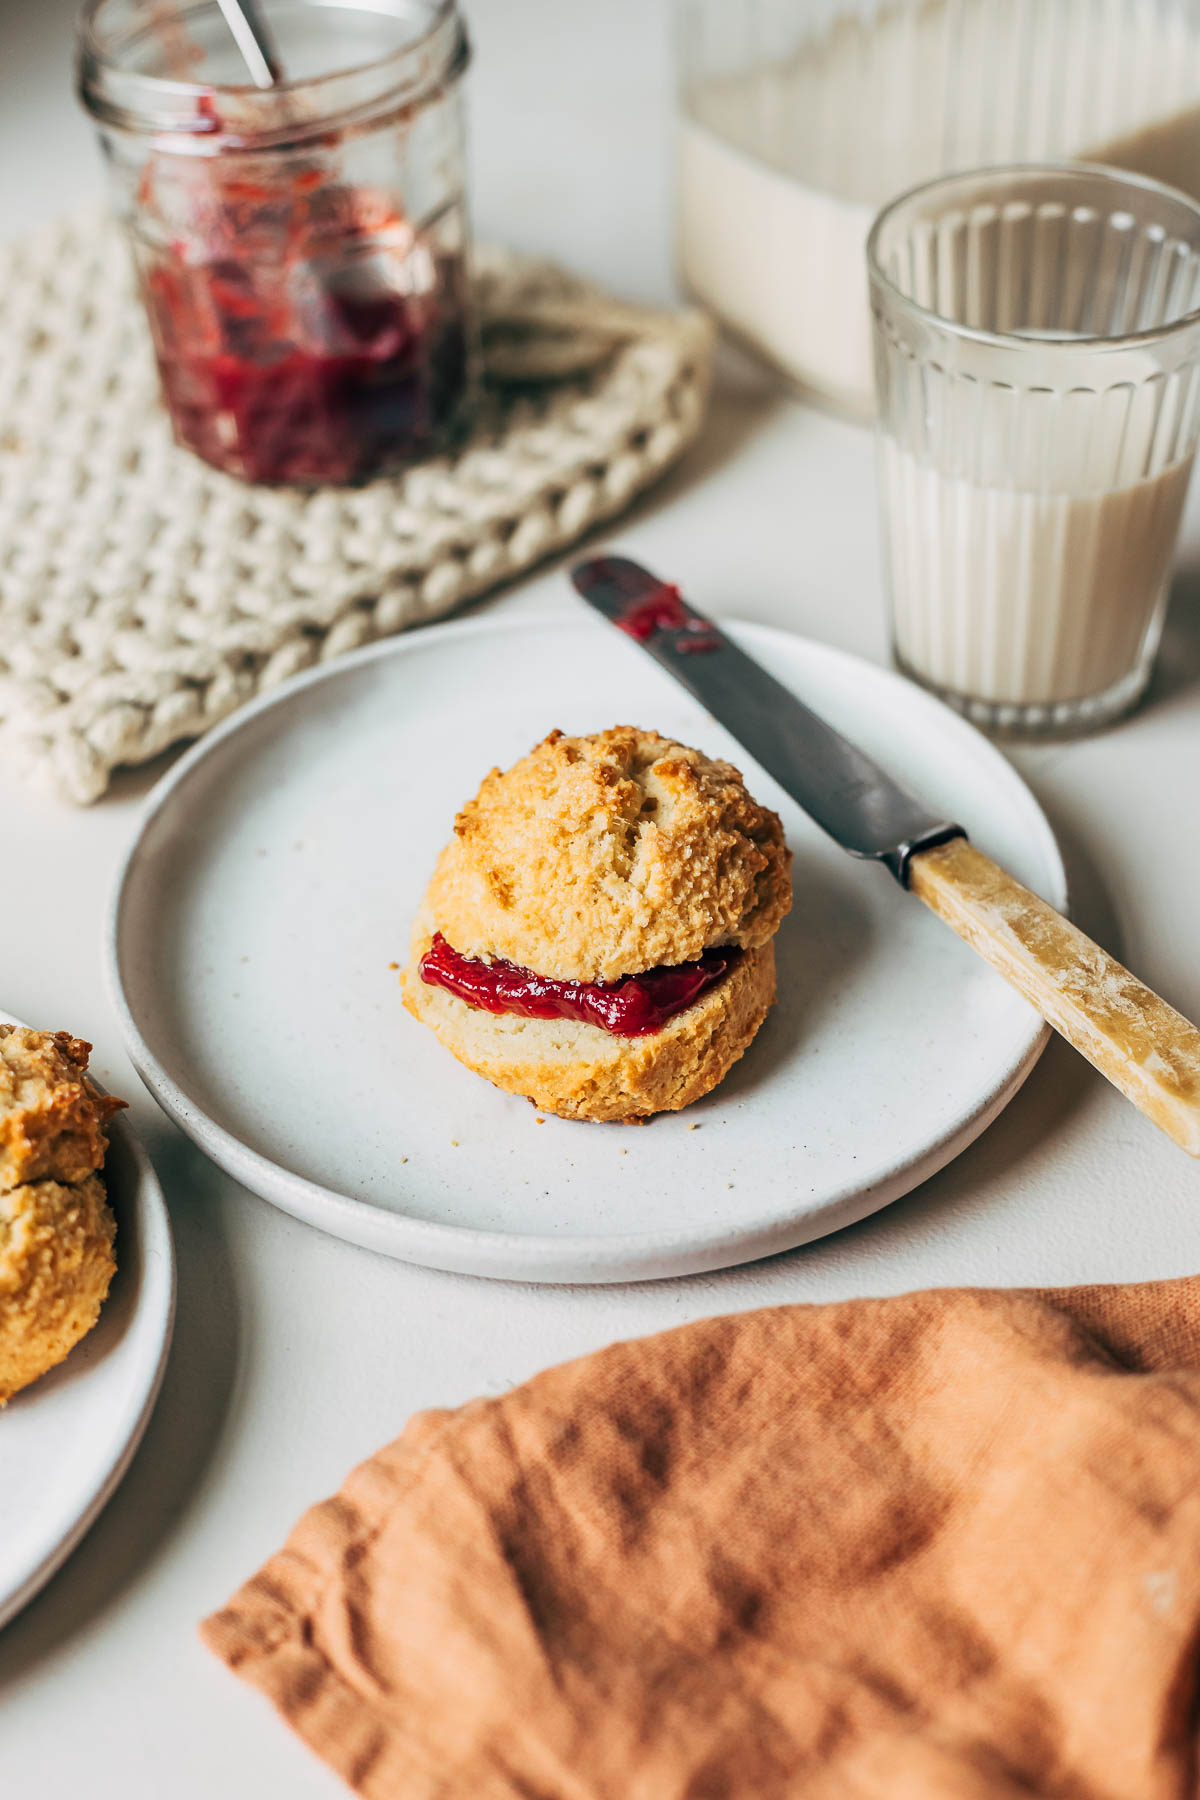 Biscuit on a plate sandwiched with red jam.